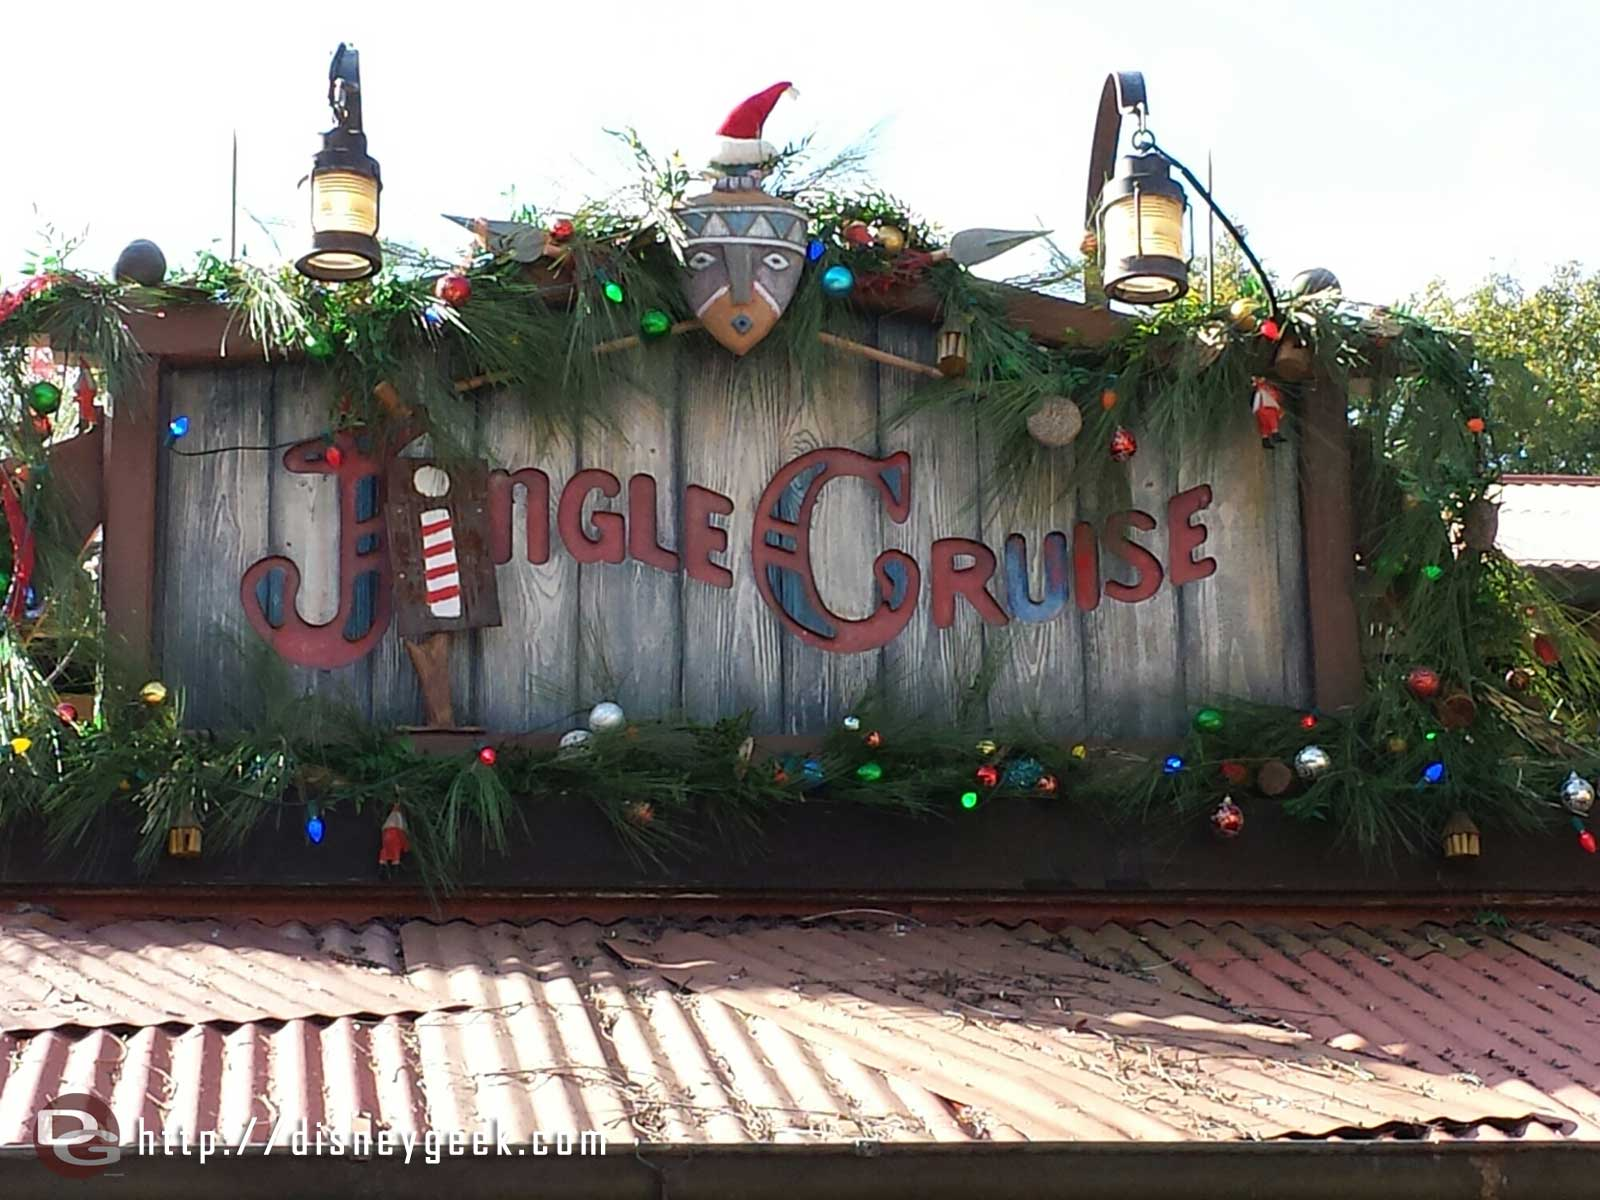 Checking out the east coast Jingle Cruise #wdw (25 min wait posted)